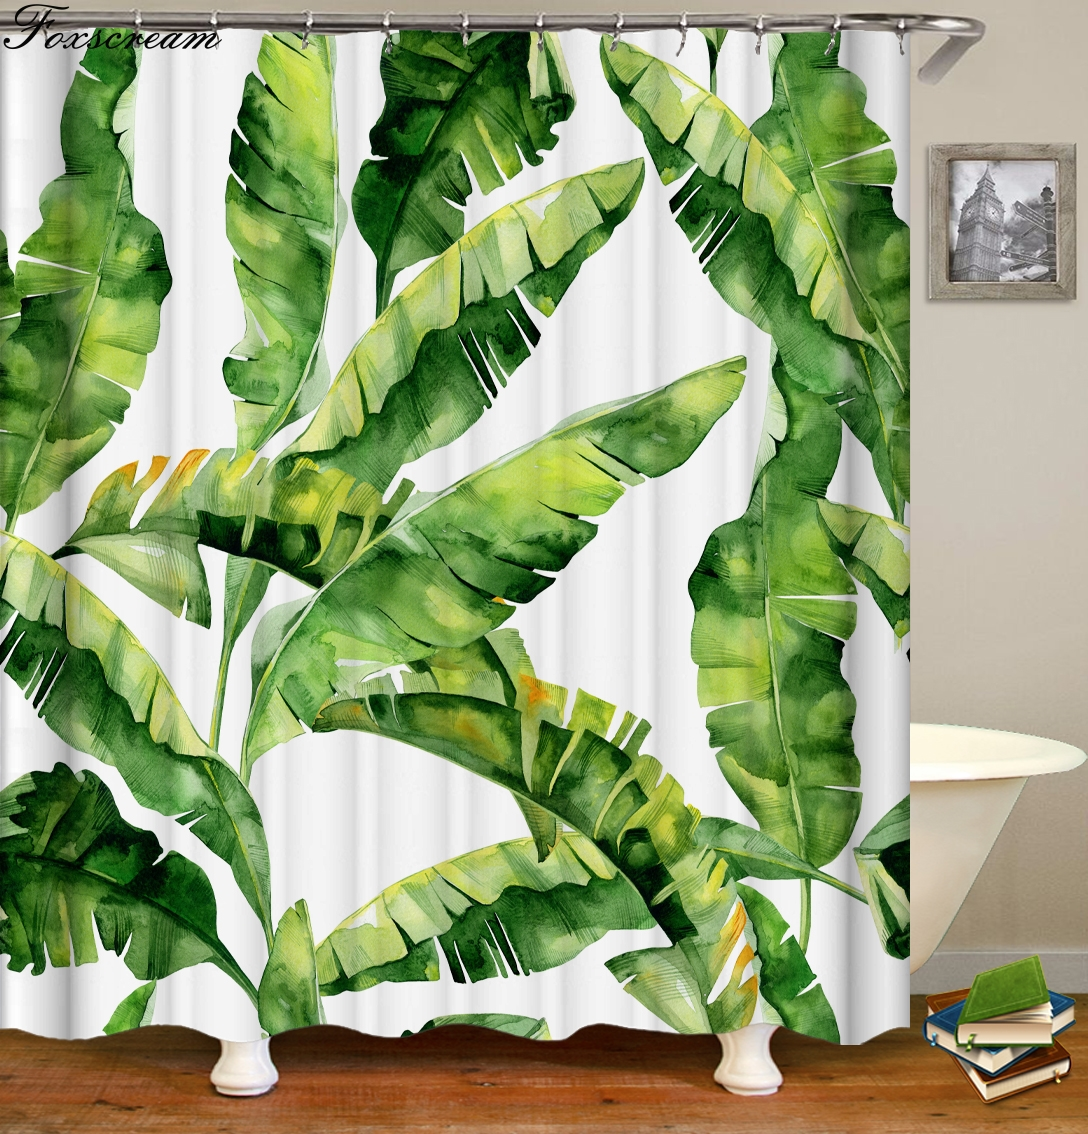 Tropical Shower Curtains 3d Green Shower Curtain Bath Fabric